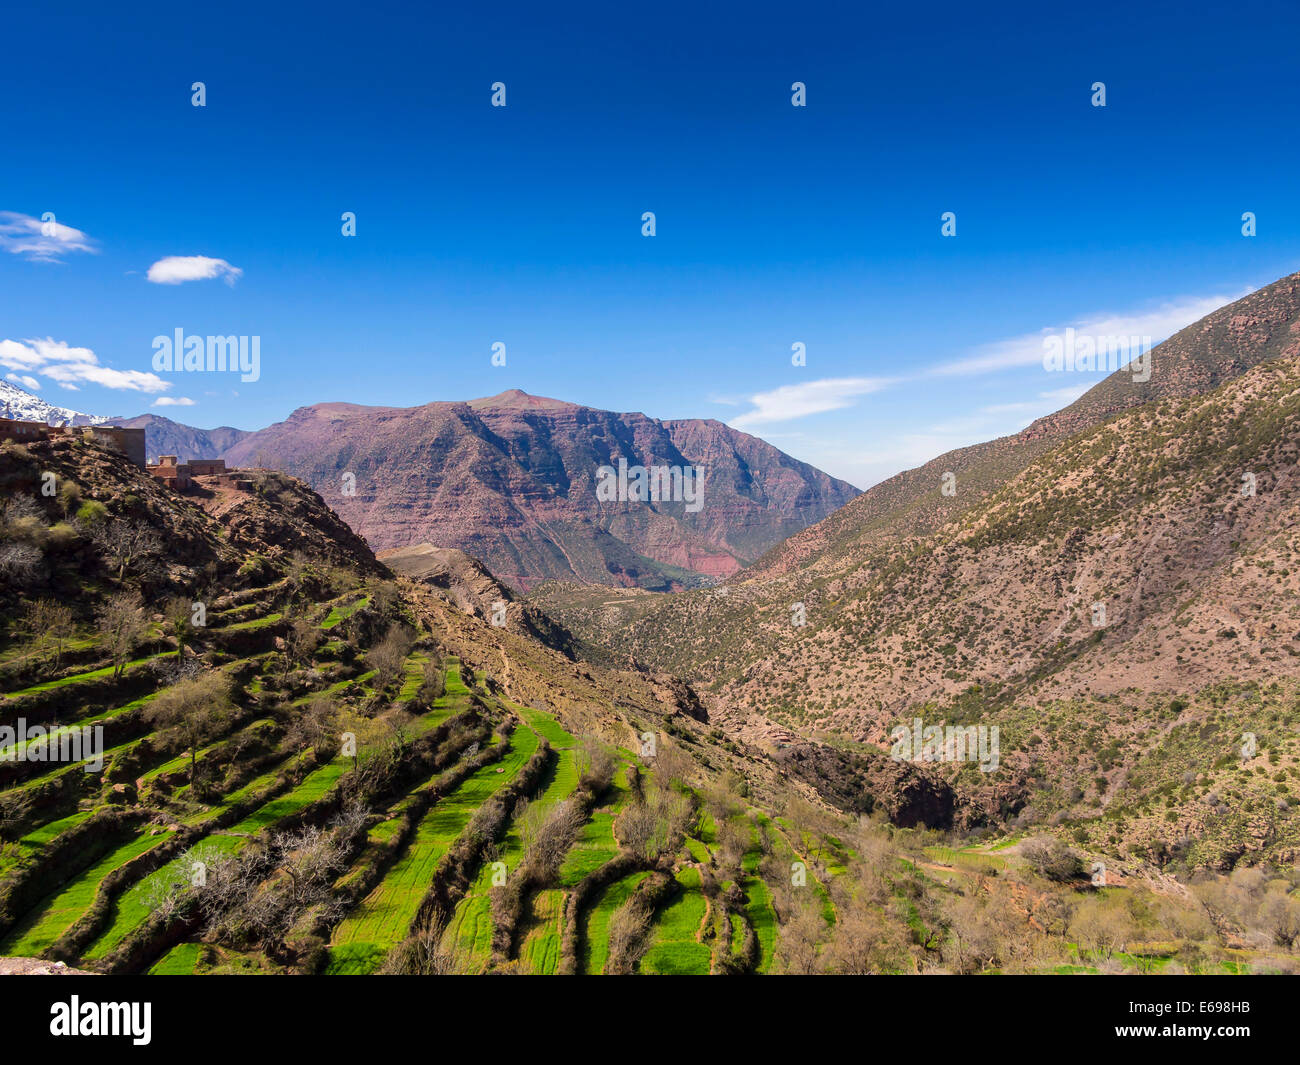 Atlas Mountains, Anammer, Ourika Valley, Marrakech-Tensift-Al Haouz, Morocco - Stock Image